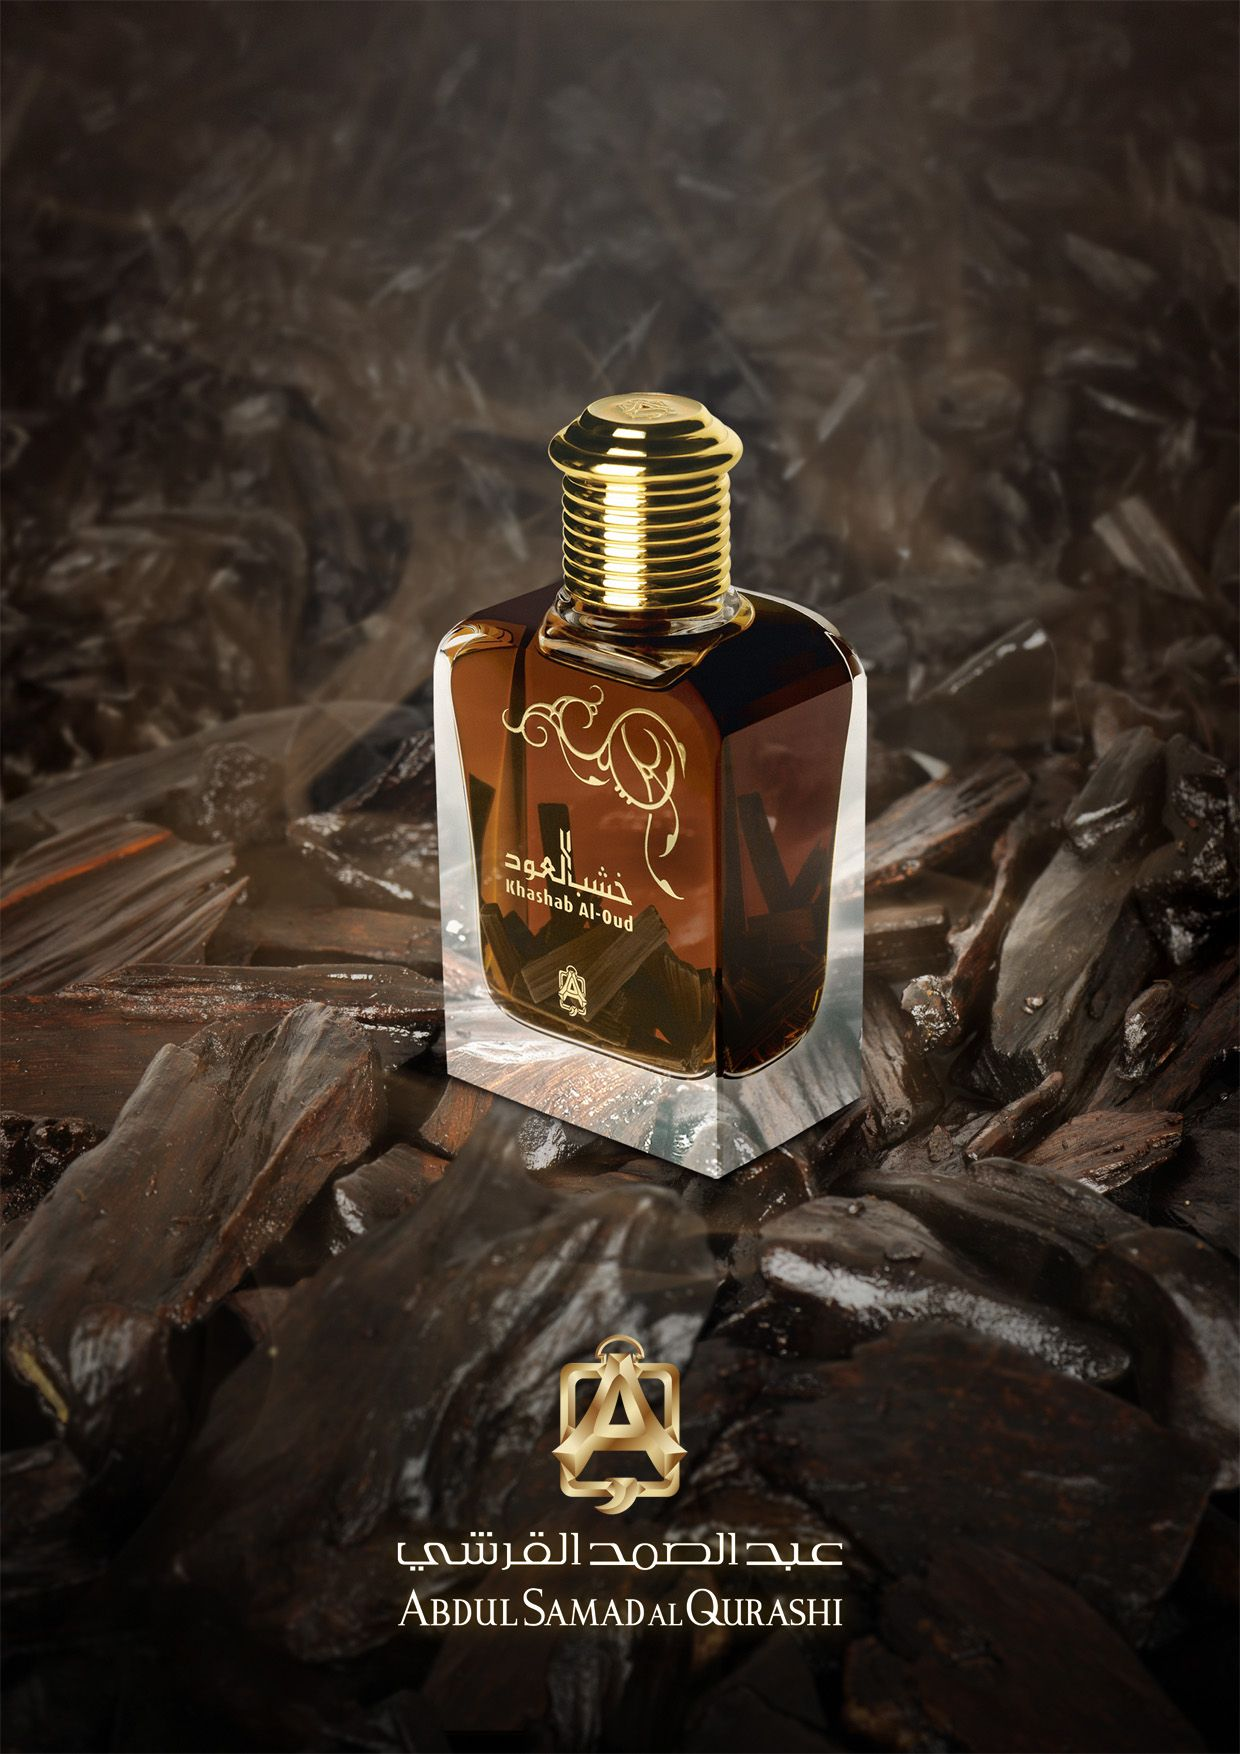 49dec0a18 Popular Perfumes, Perfume Oils, Perfume Bottles, Africa Travel, Wood  Design, Cologne